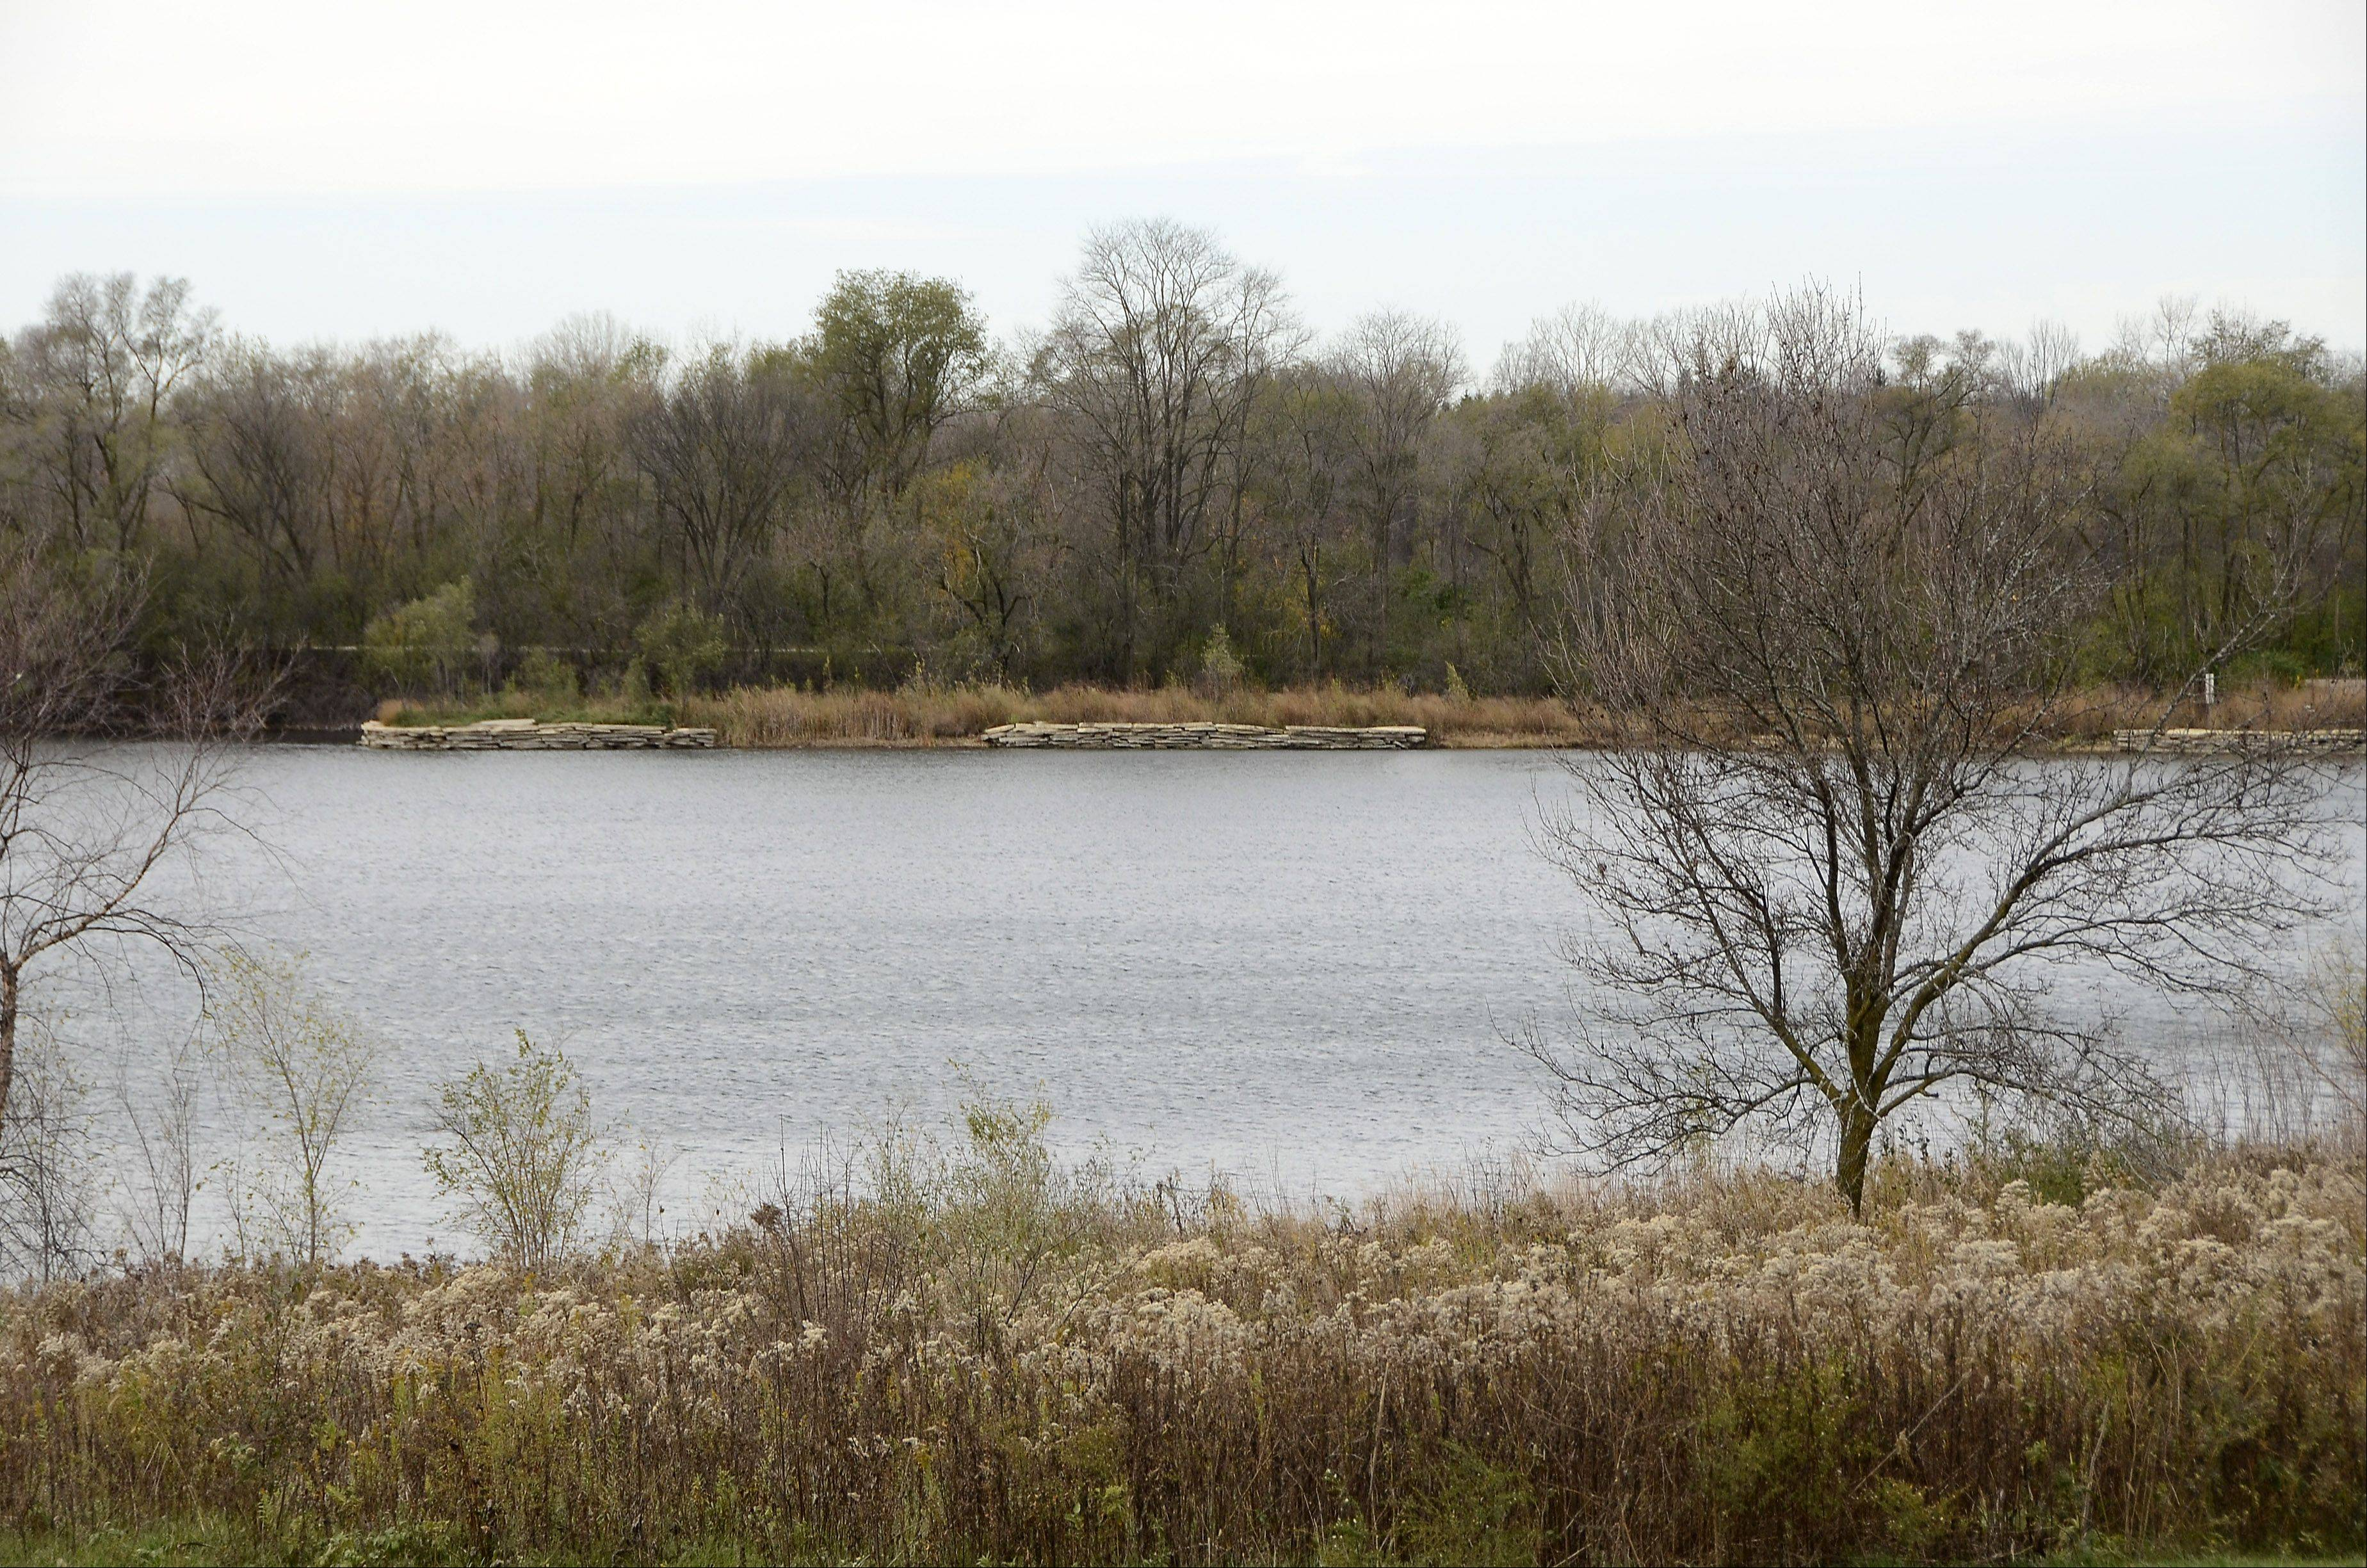 DuPage County Board members on Tuesday approved a roughly $8.1 million wetlands project at the West Branch Forest Preserve near Bartlett. The work could start this month.